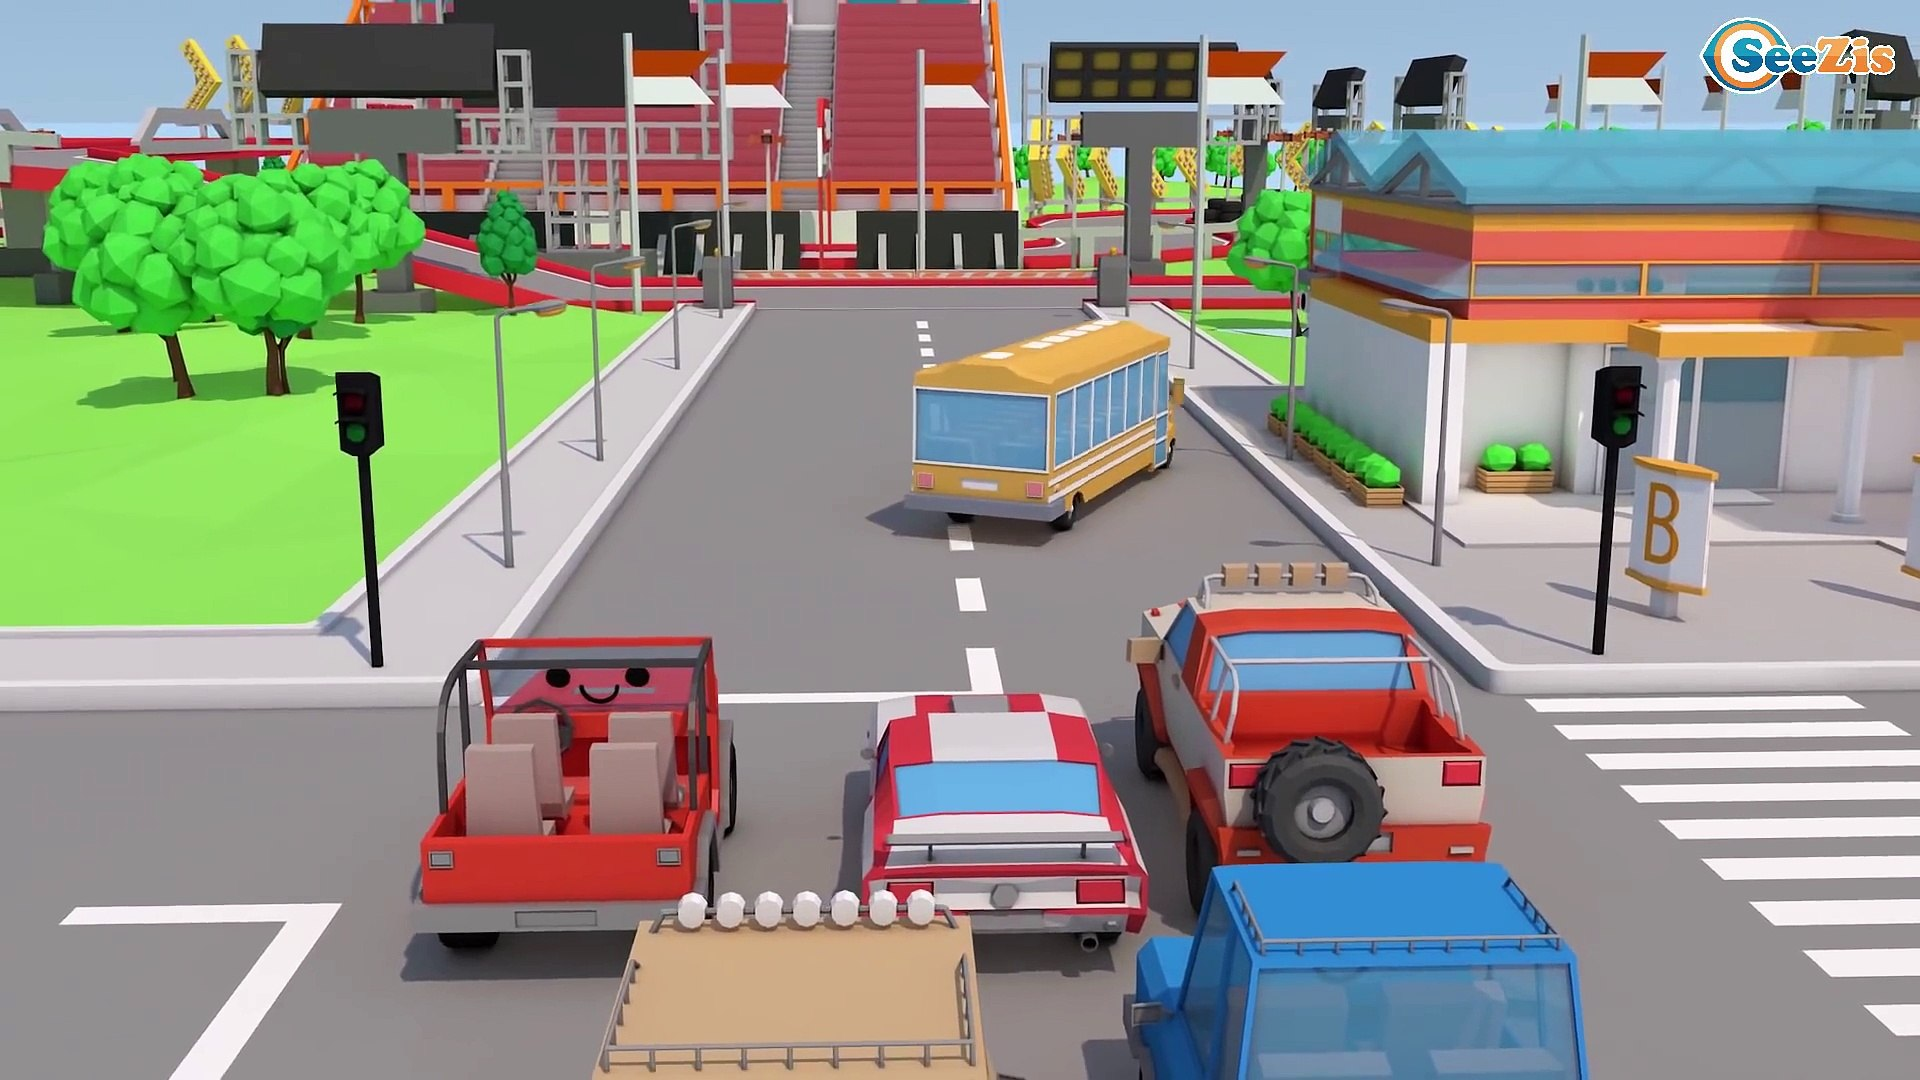 Ambulance Car Rescue in the city w Police Car & Race 3D Cars Cartoon Animation Cars & Truck